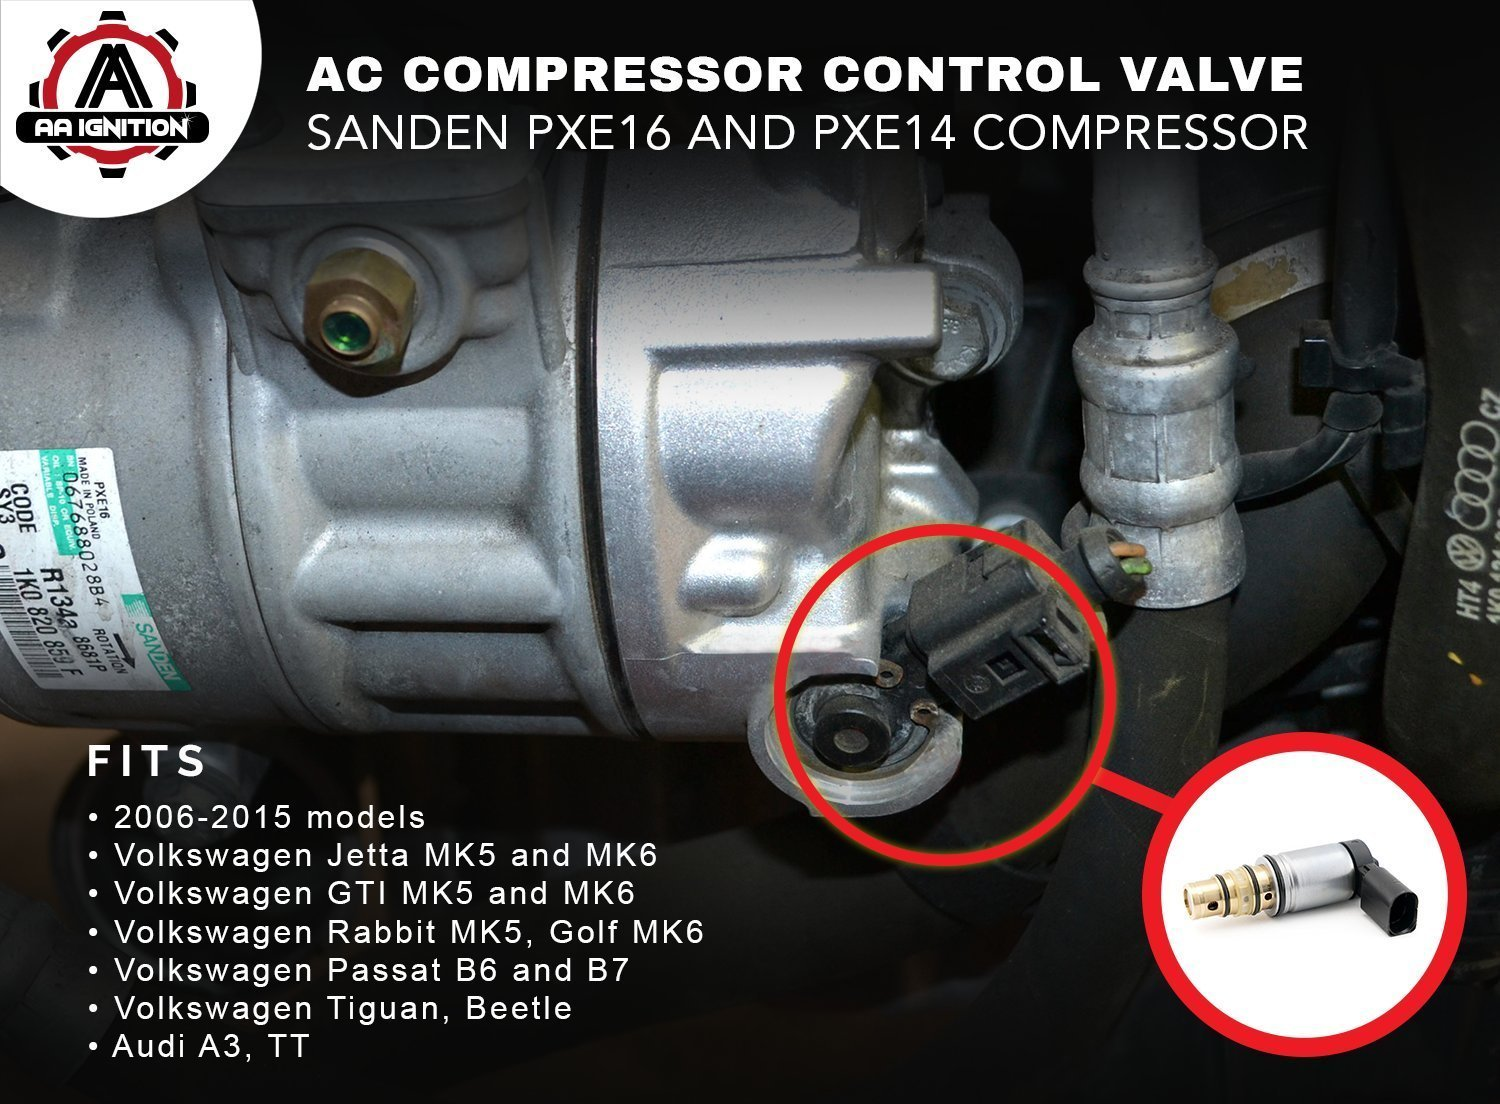 Ac Compressor Control Solenoid Valve Fits Volkswagen Mk4 Golf Air Conditioner Wiring Diagram Jetta Sanden Pxe16 Pxe14 1k0820803e Vw Gti Passat Tiguan Tdi And More